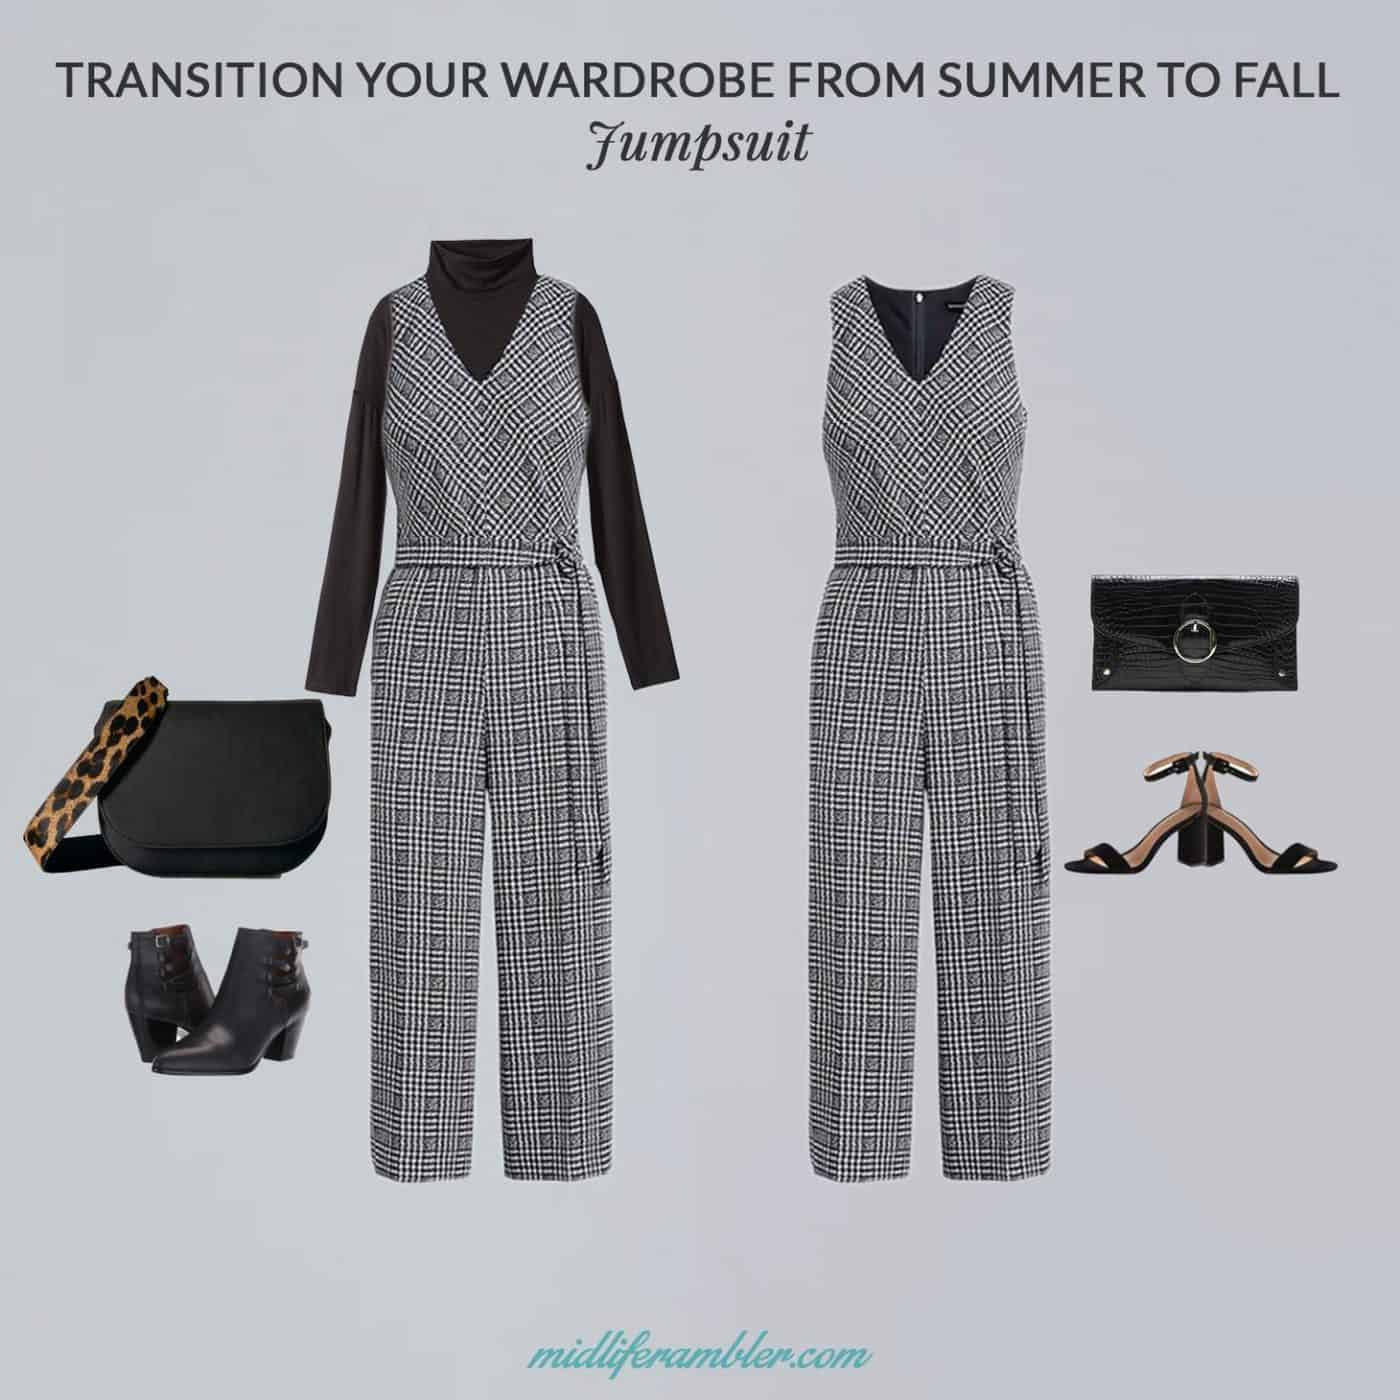 5 Pieces You Can Wear Now and Easily Transition from Summer to Fall Outfits 2